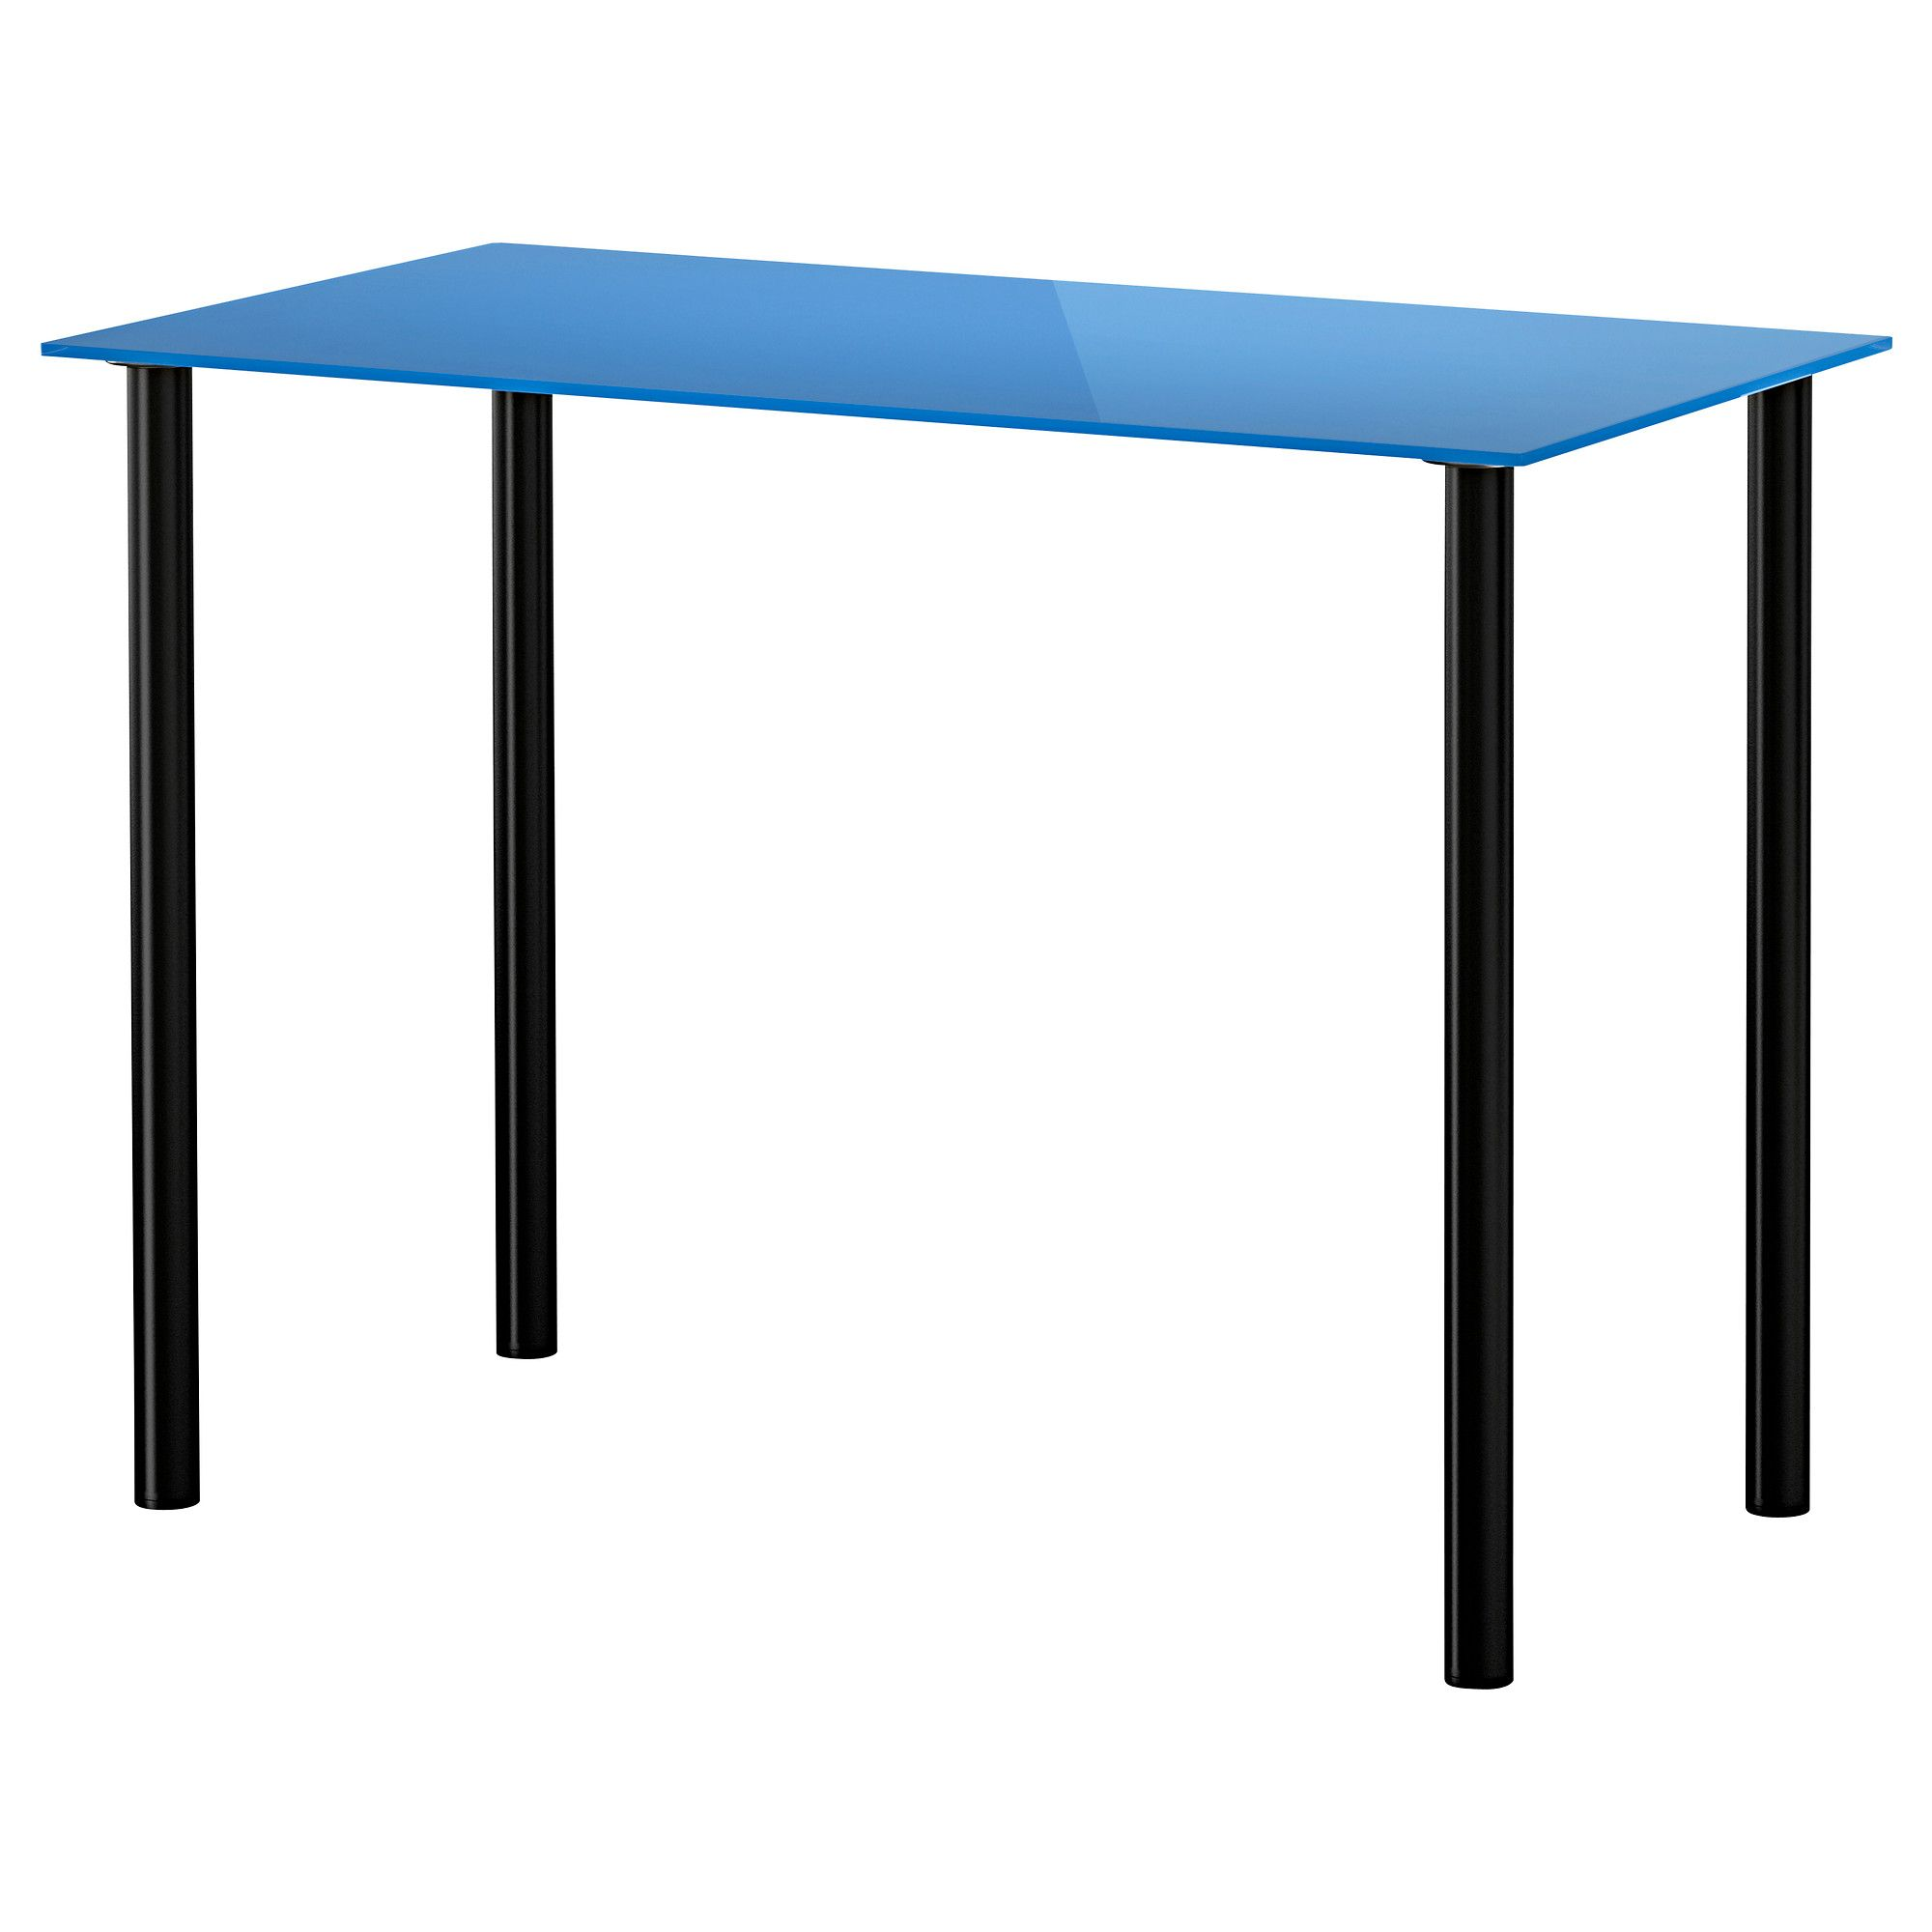 vika glasholm vika adils table glass blue black ikea office rh pinterest com